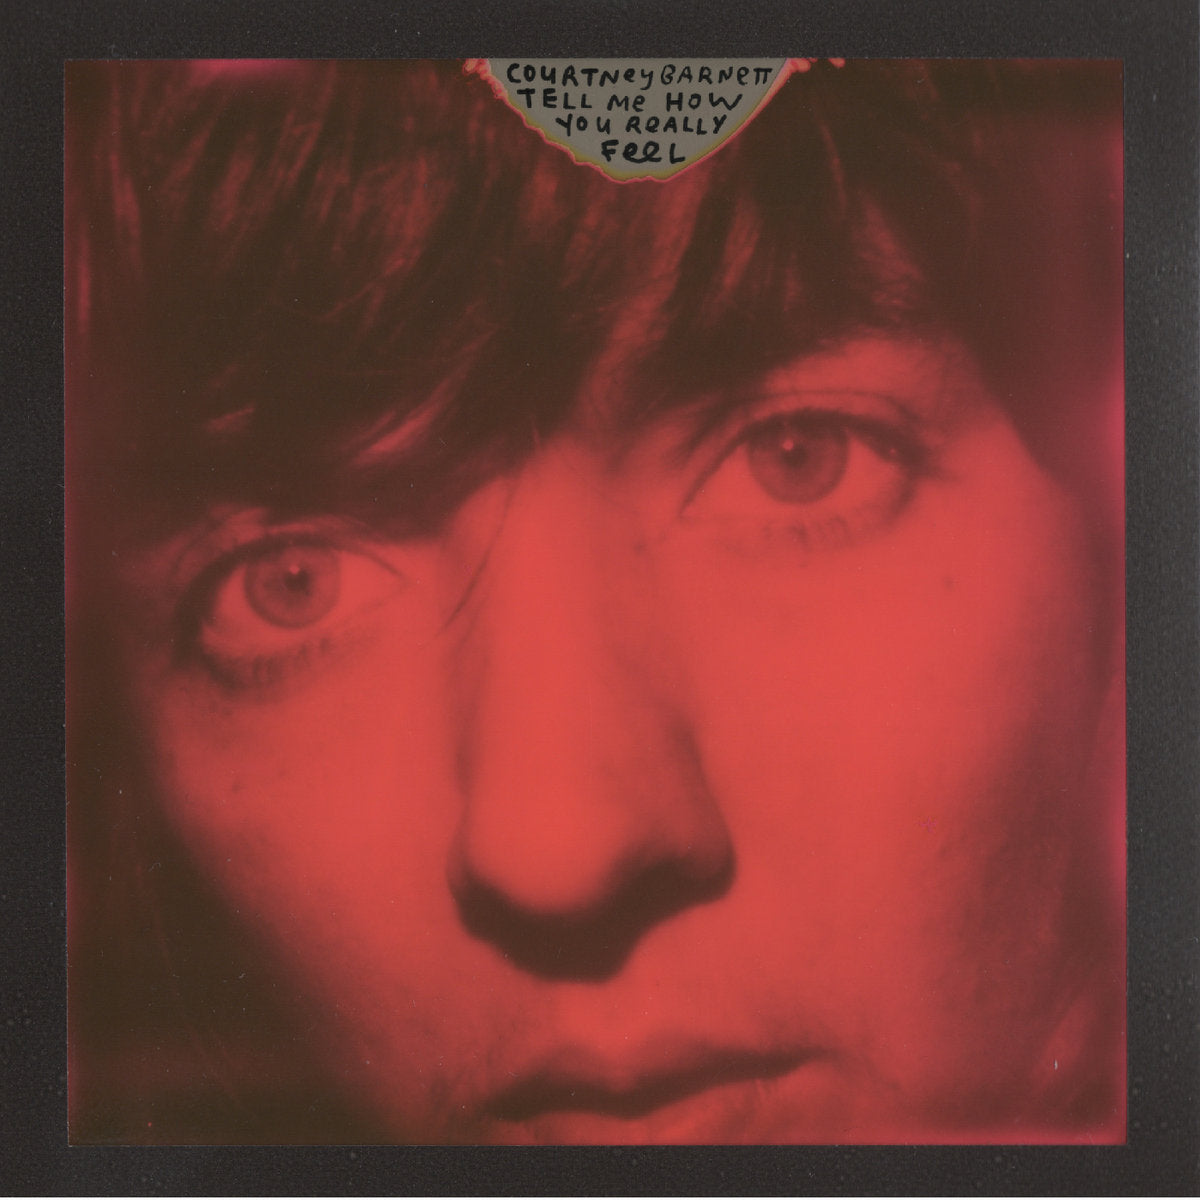 Courtney Barnett - Tell Me How You Really Feel LP - Vinyl